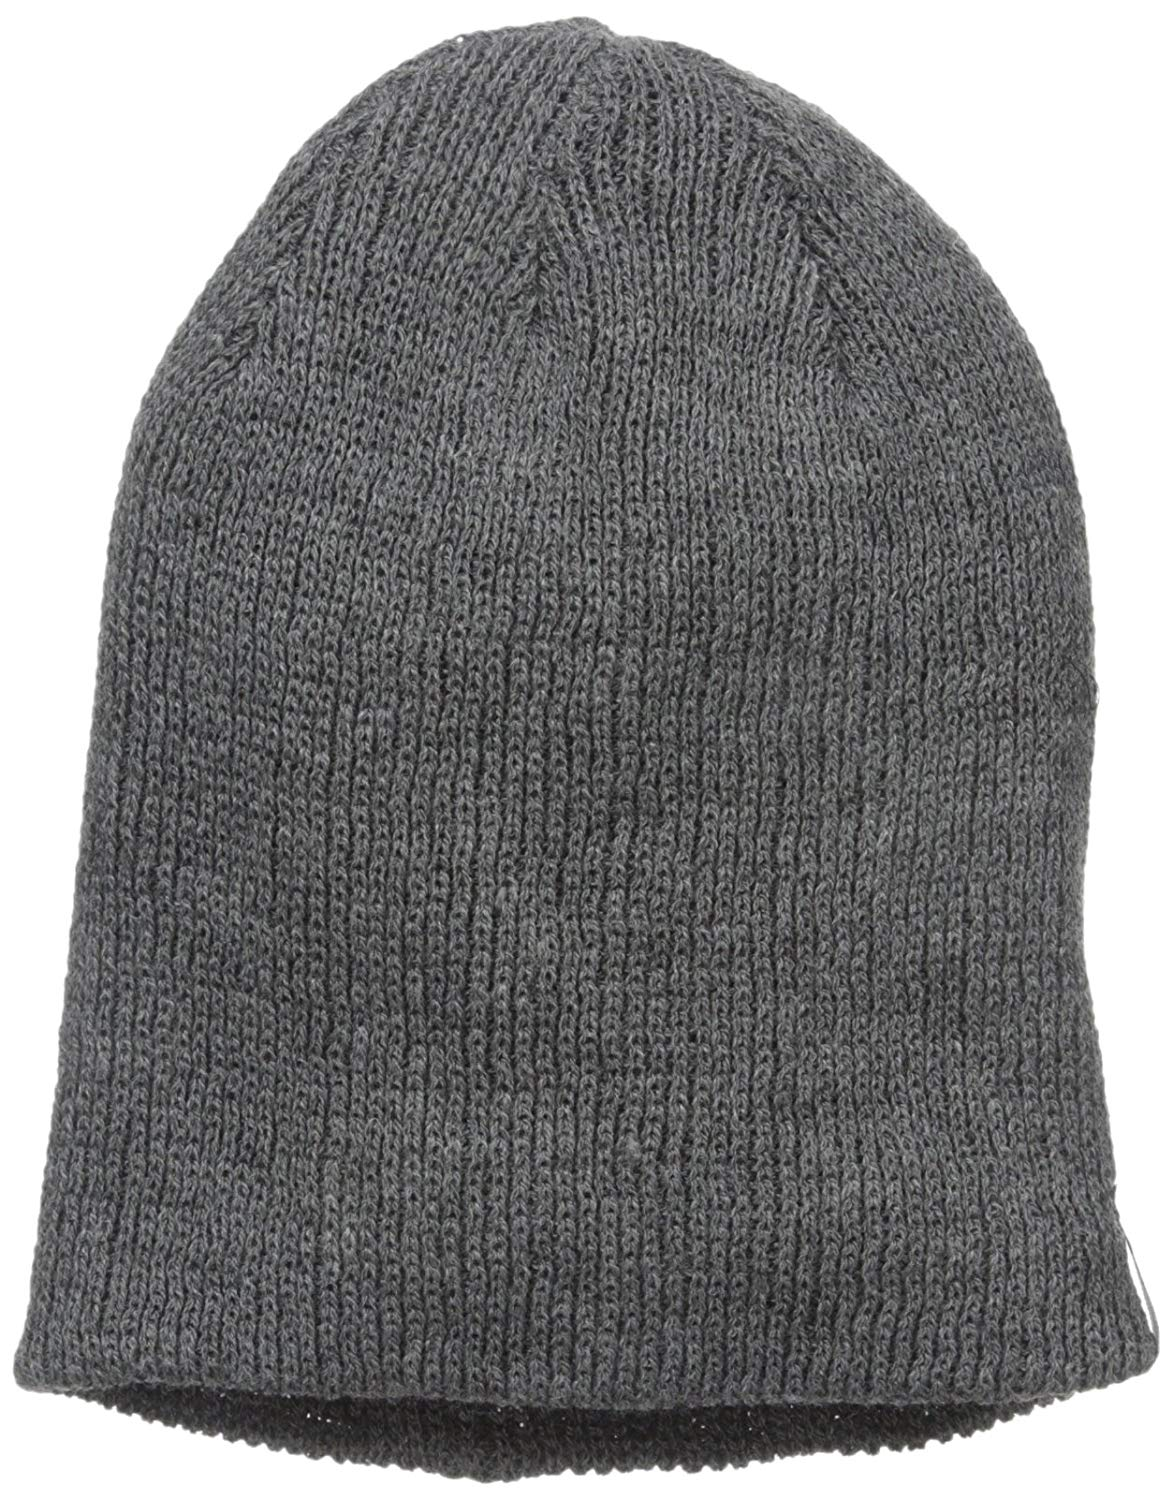 b4035b2a3e1 Get Quotations · Spacecraft Offender Heathered Beanie